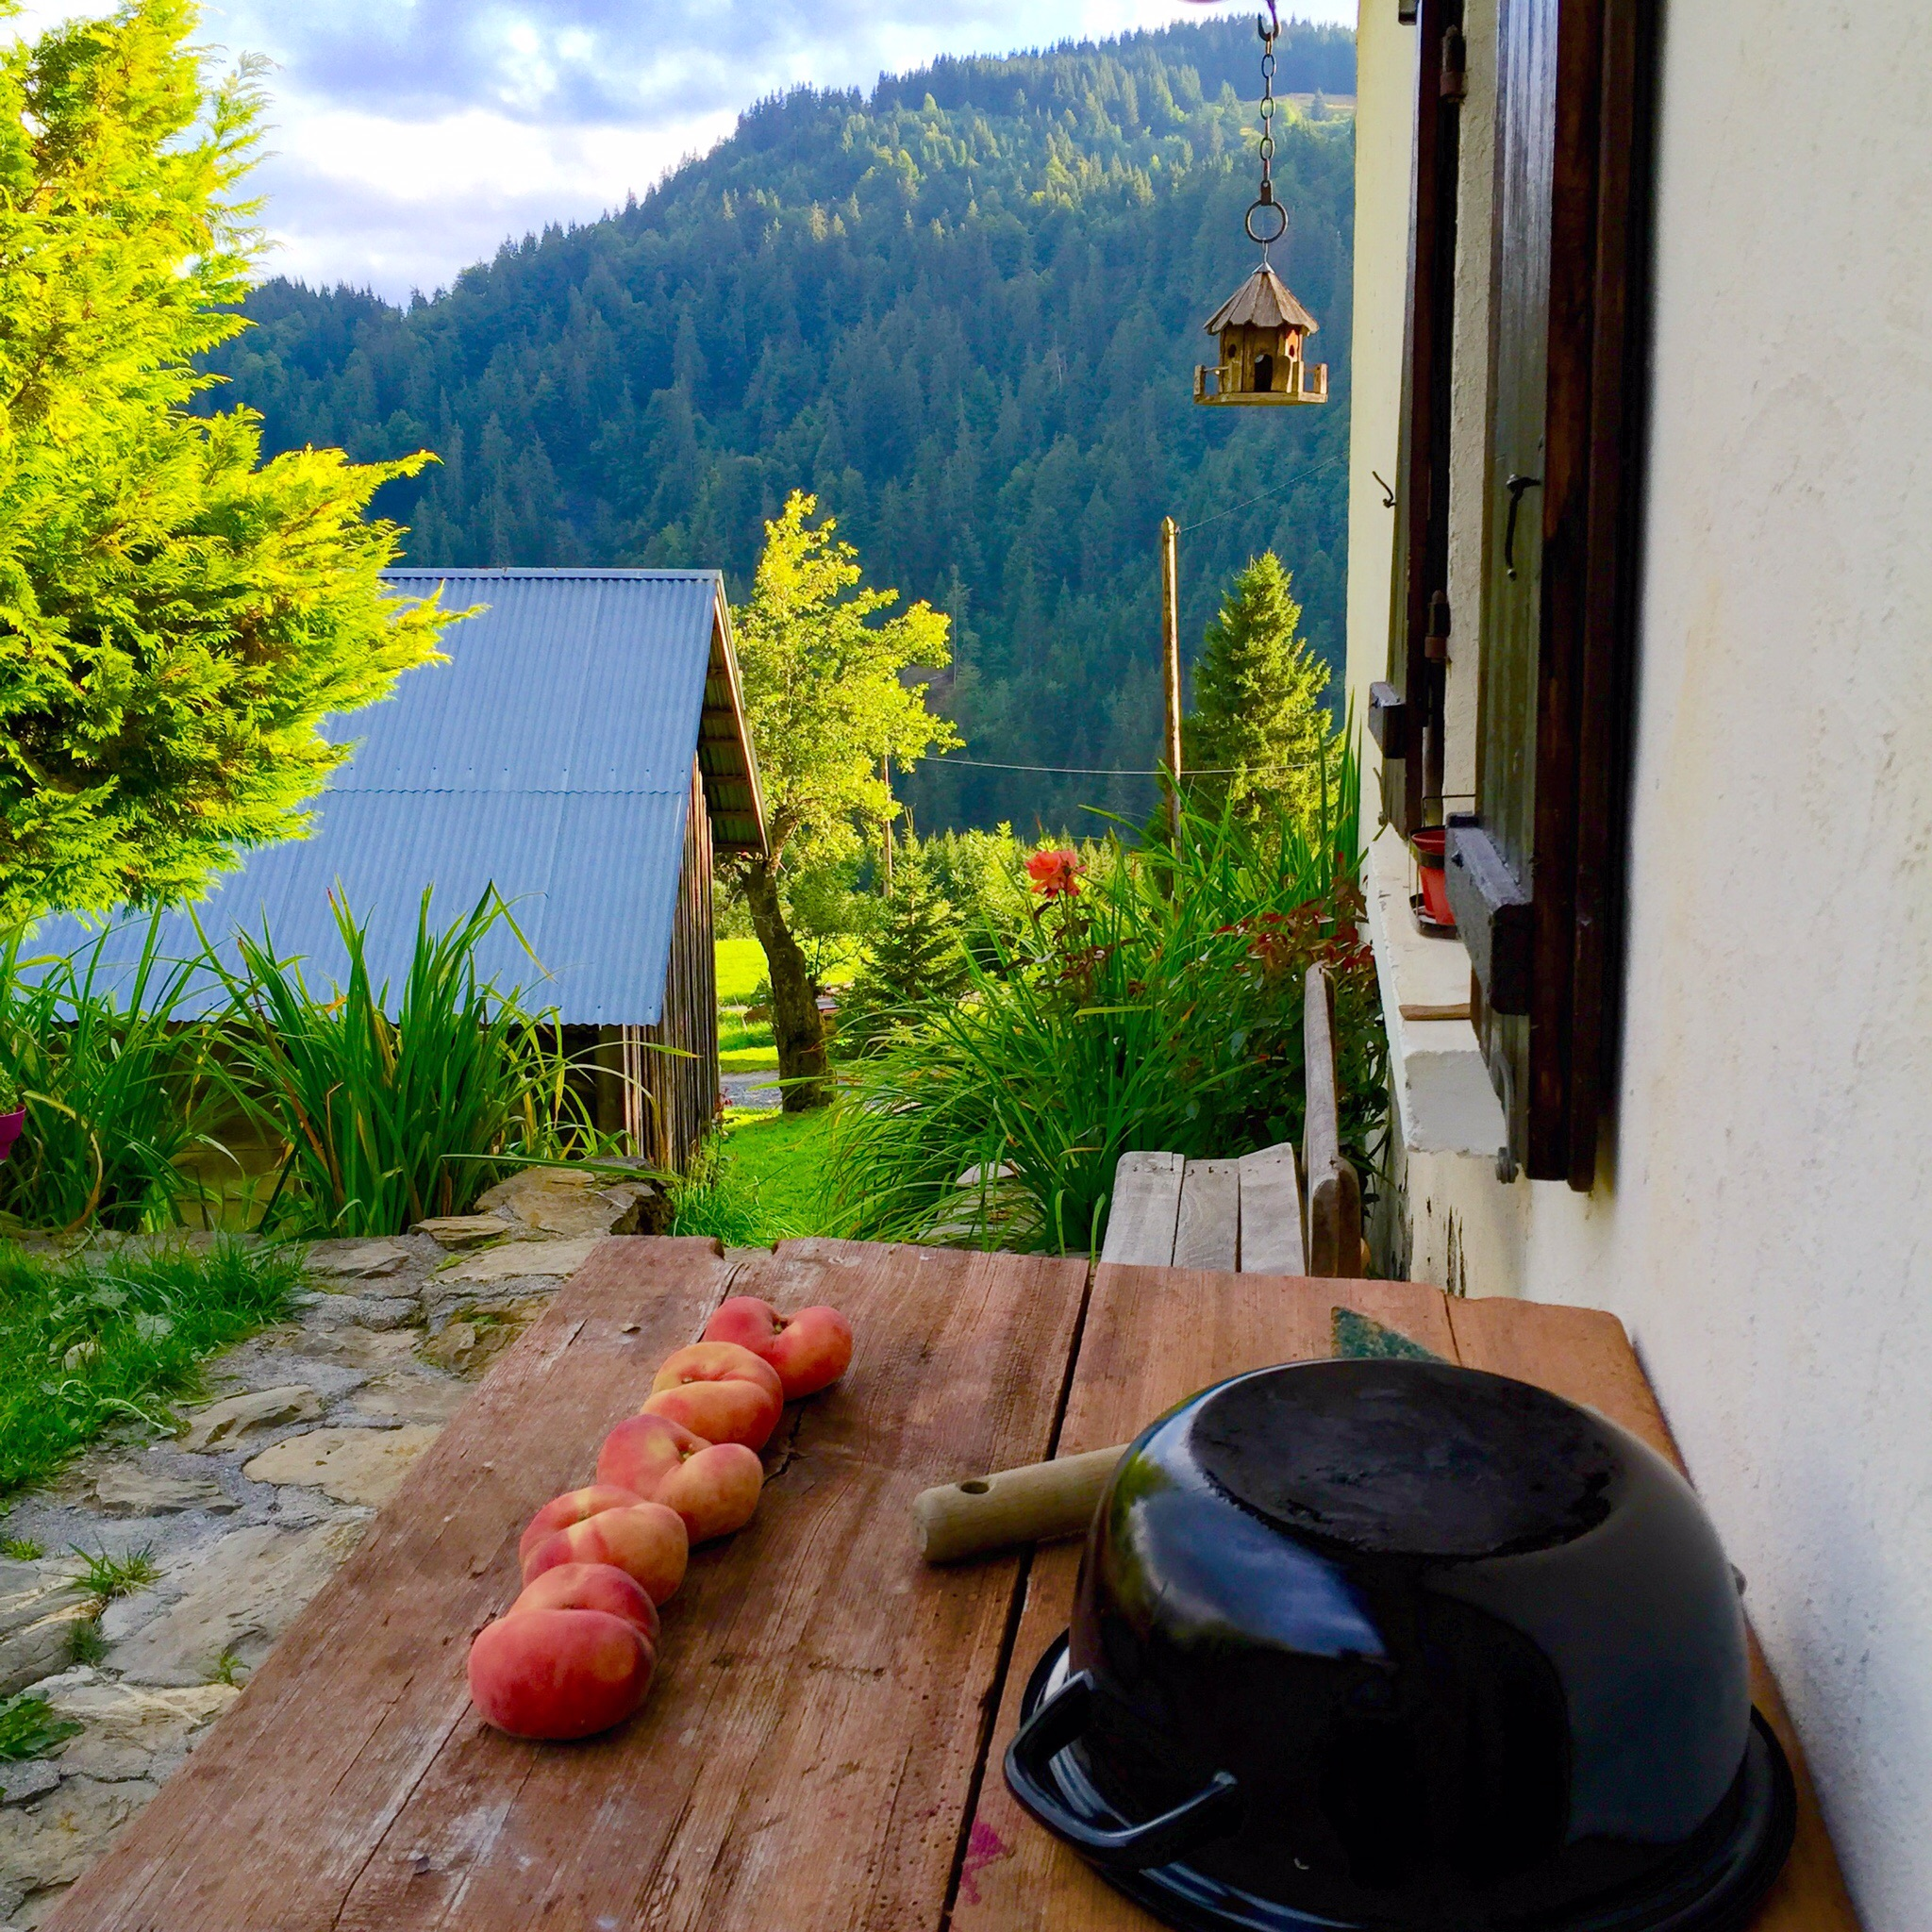 Peaches ripening on the porch